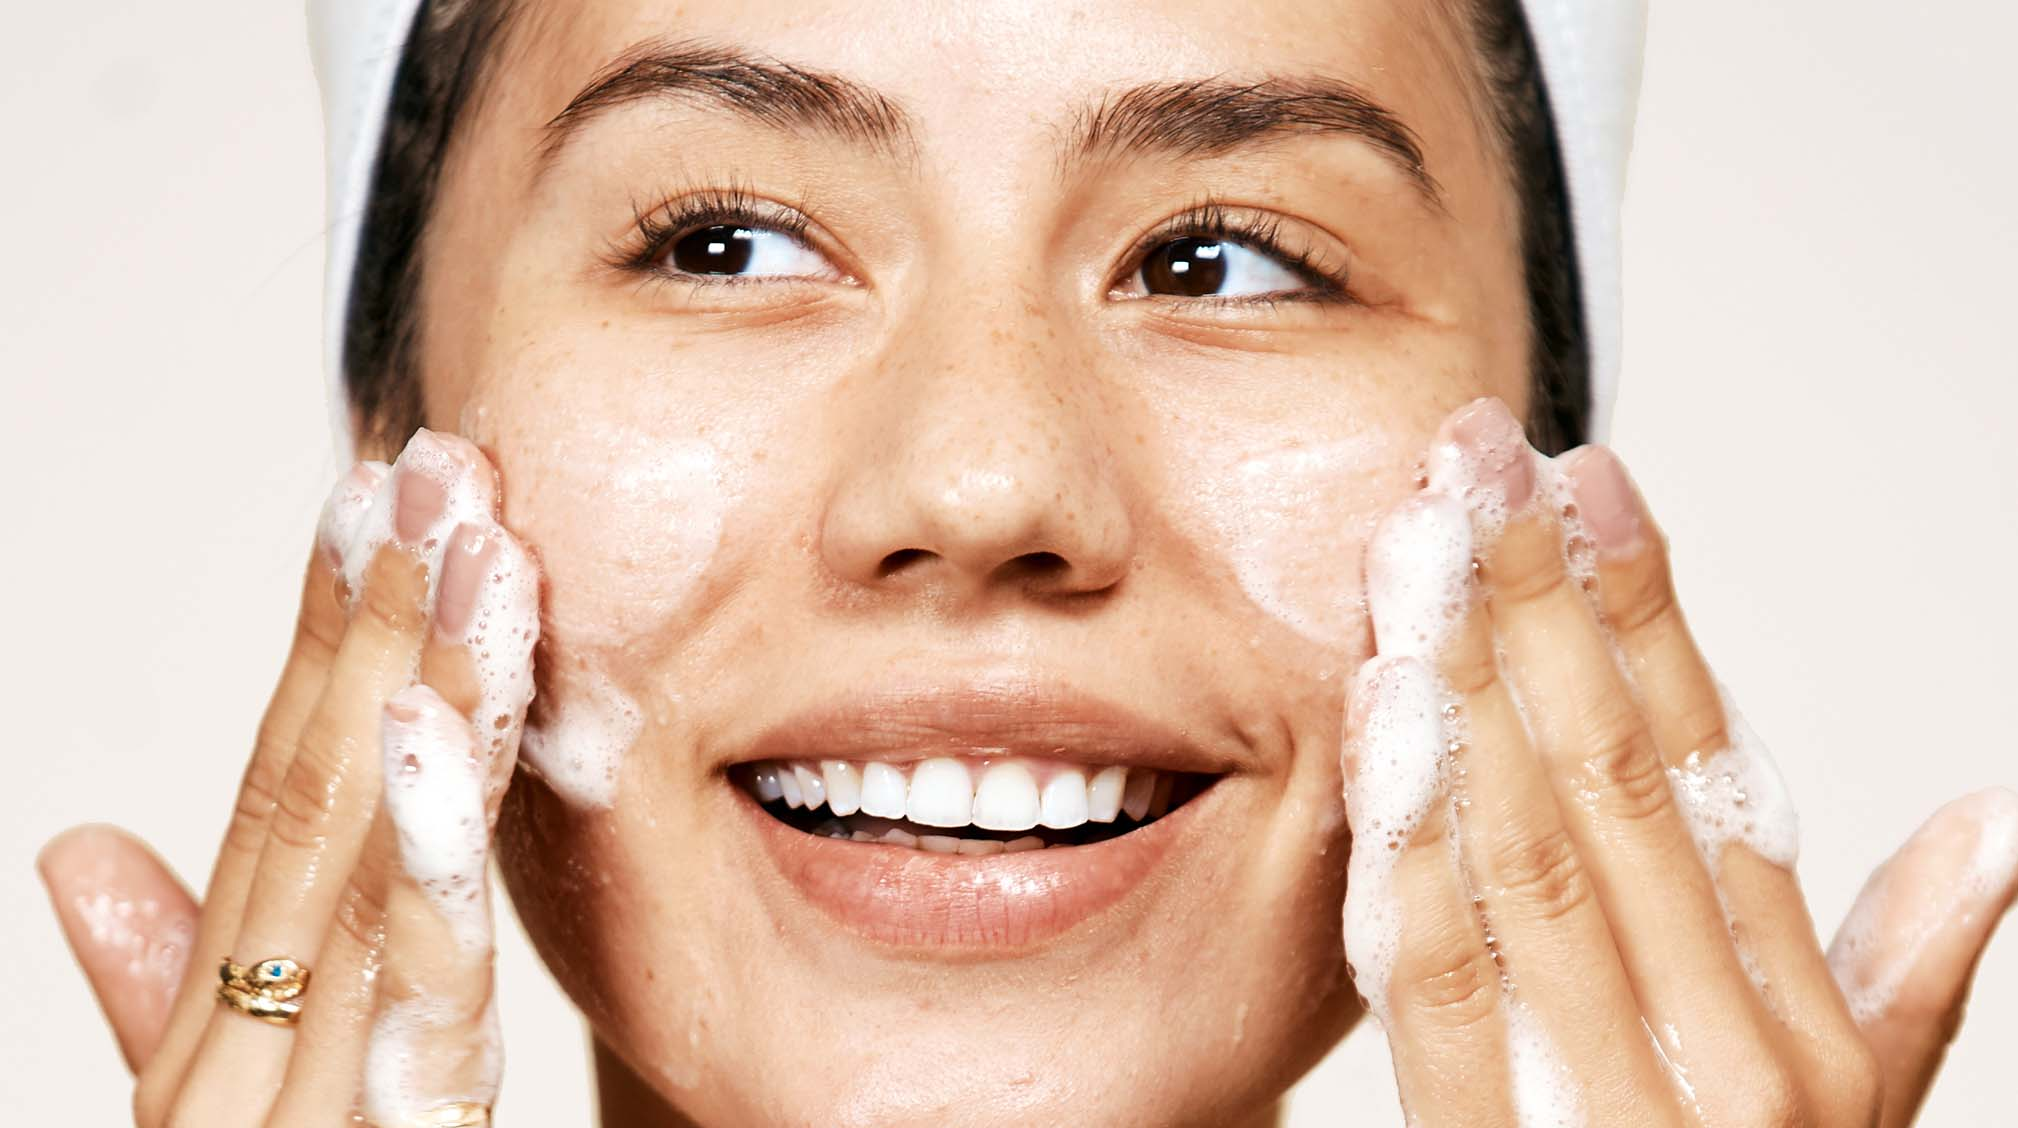 Cleansing 101: The Right Way to Wash Your Face, According to Dermatologists